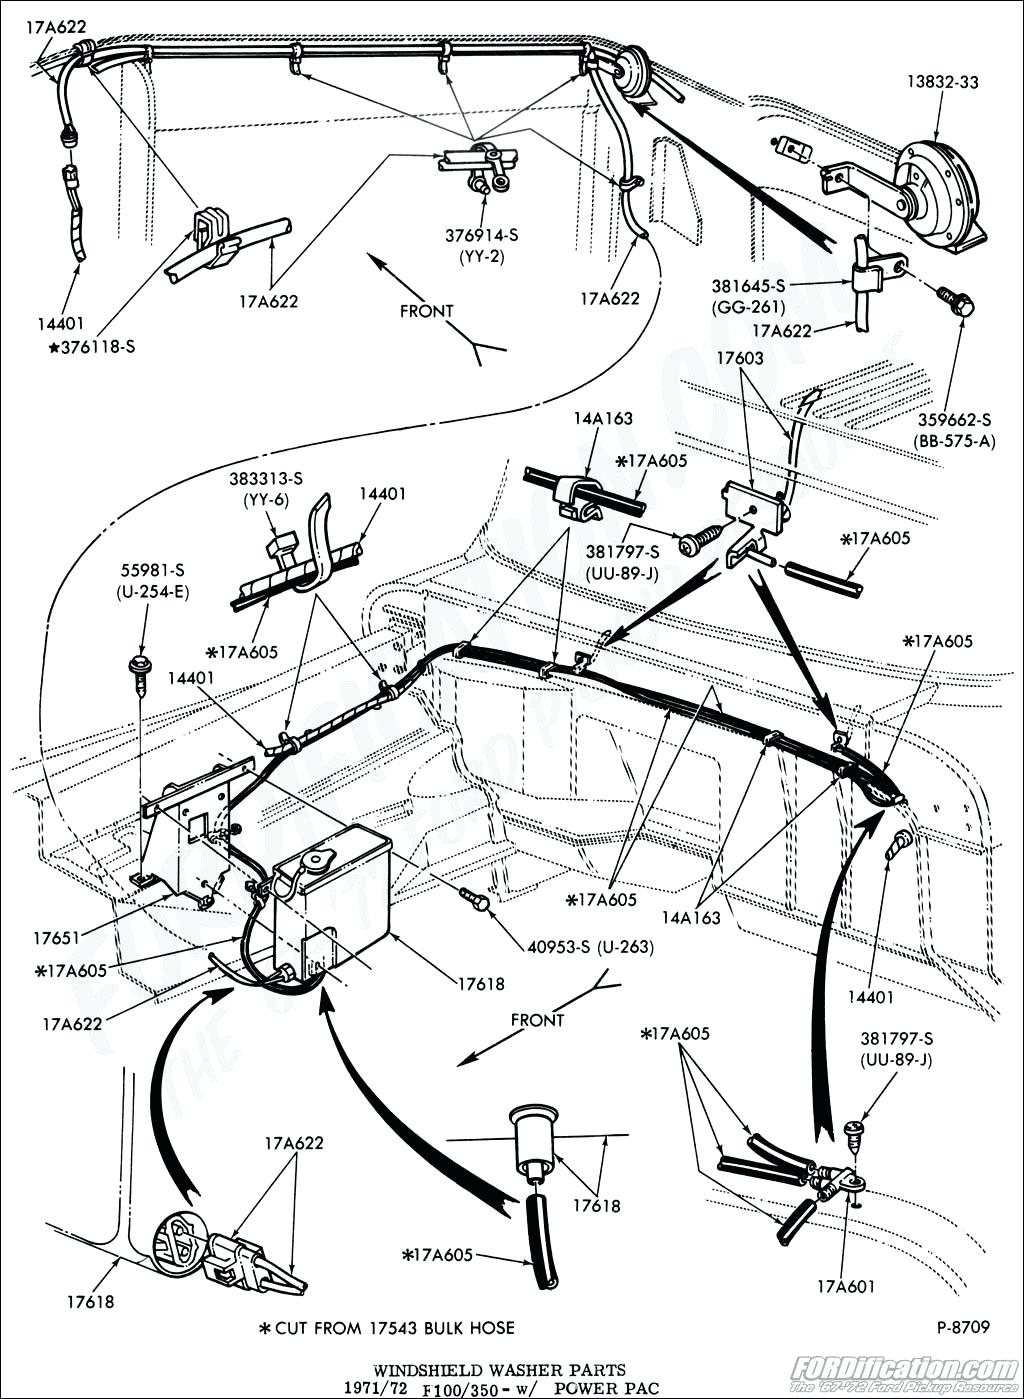 1991 Gmc Sierra Fuse Box Diagram In Addition 2004 Chevy Silverado